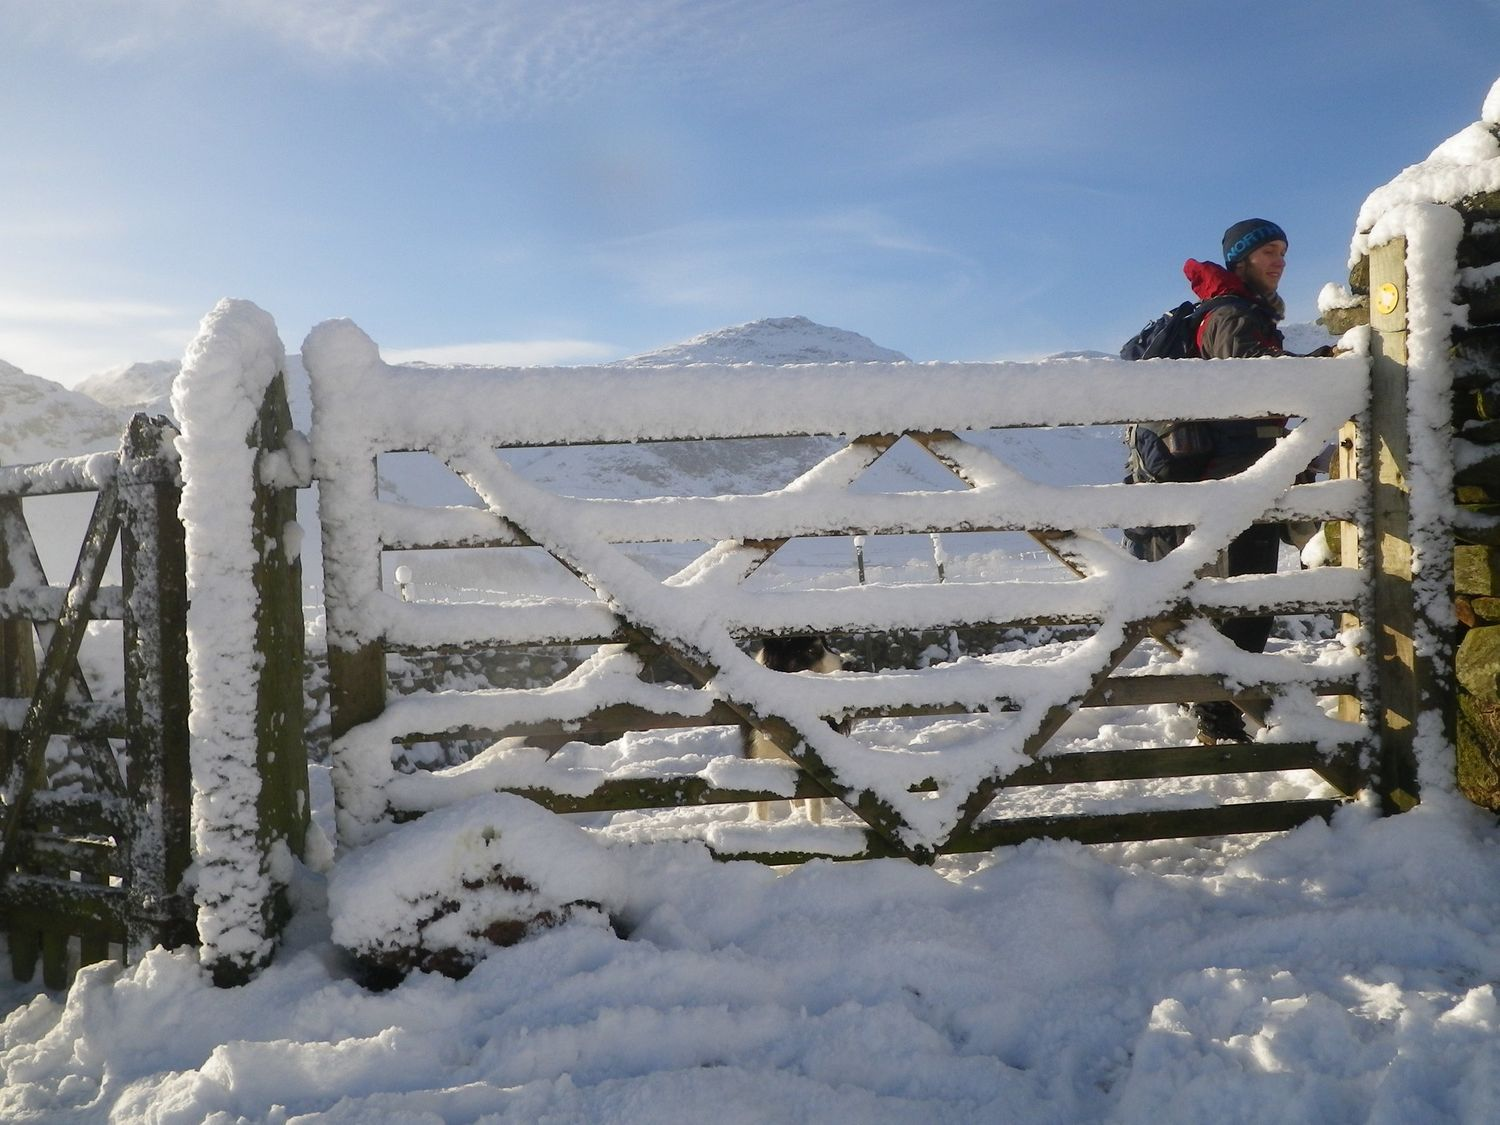 Walking in the Lake District mountains in winter - Chris Ensoll Mountain Guide